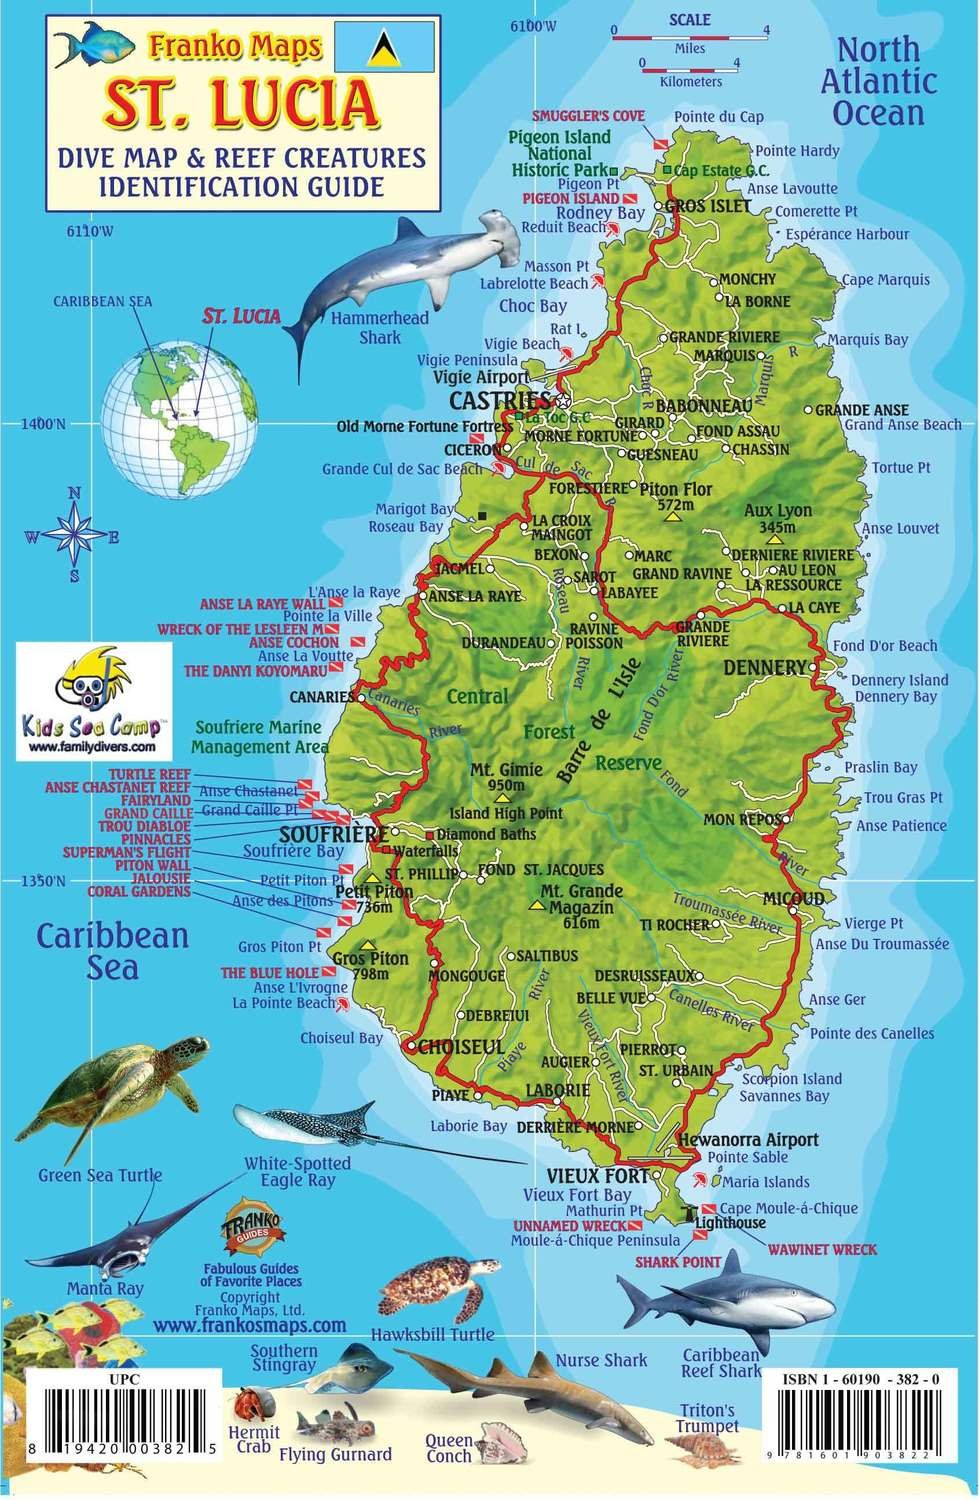 St. Lucia: Diving and Fish ID card